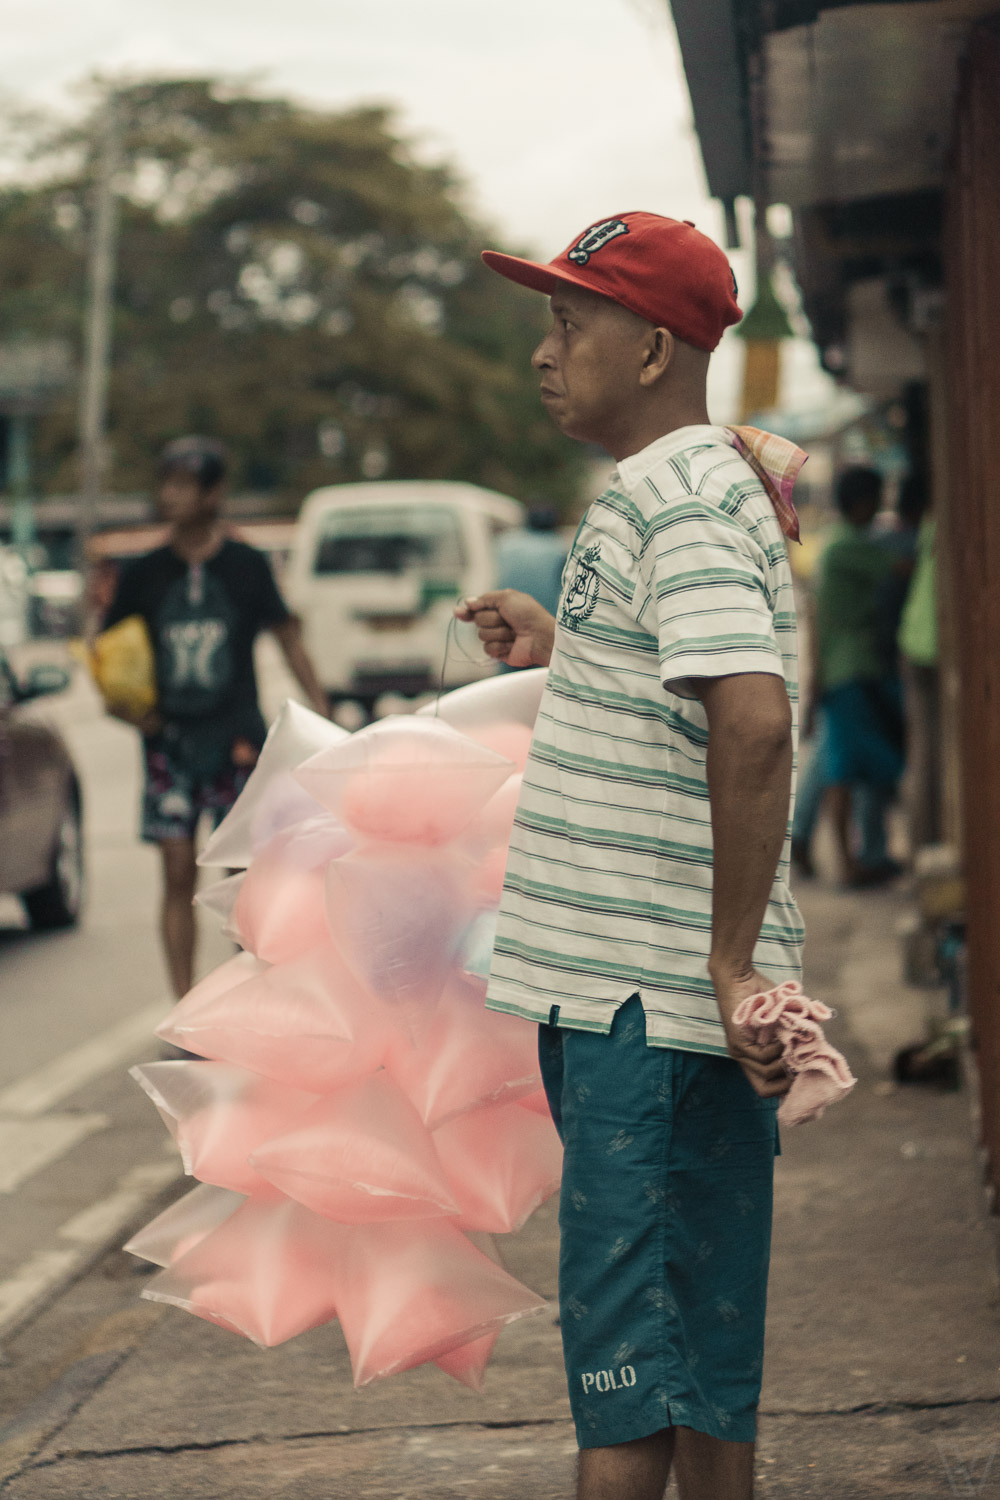 A guy holding bags of cotton candy.